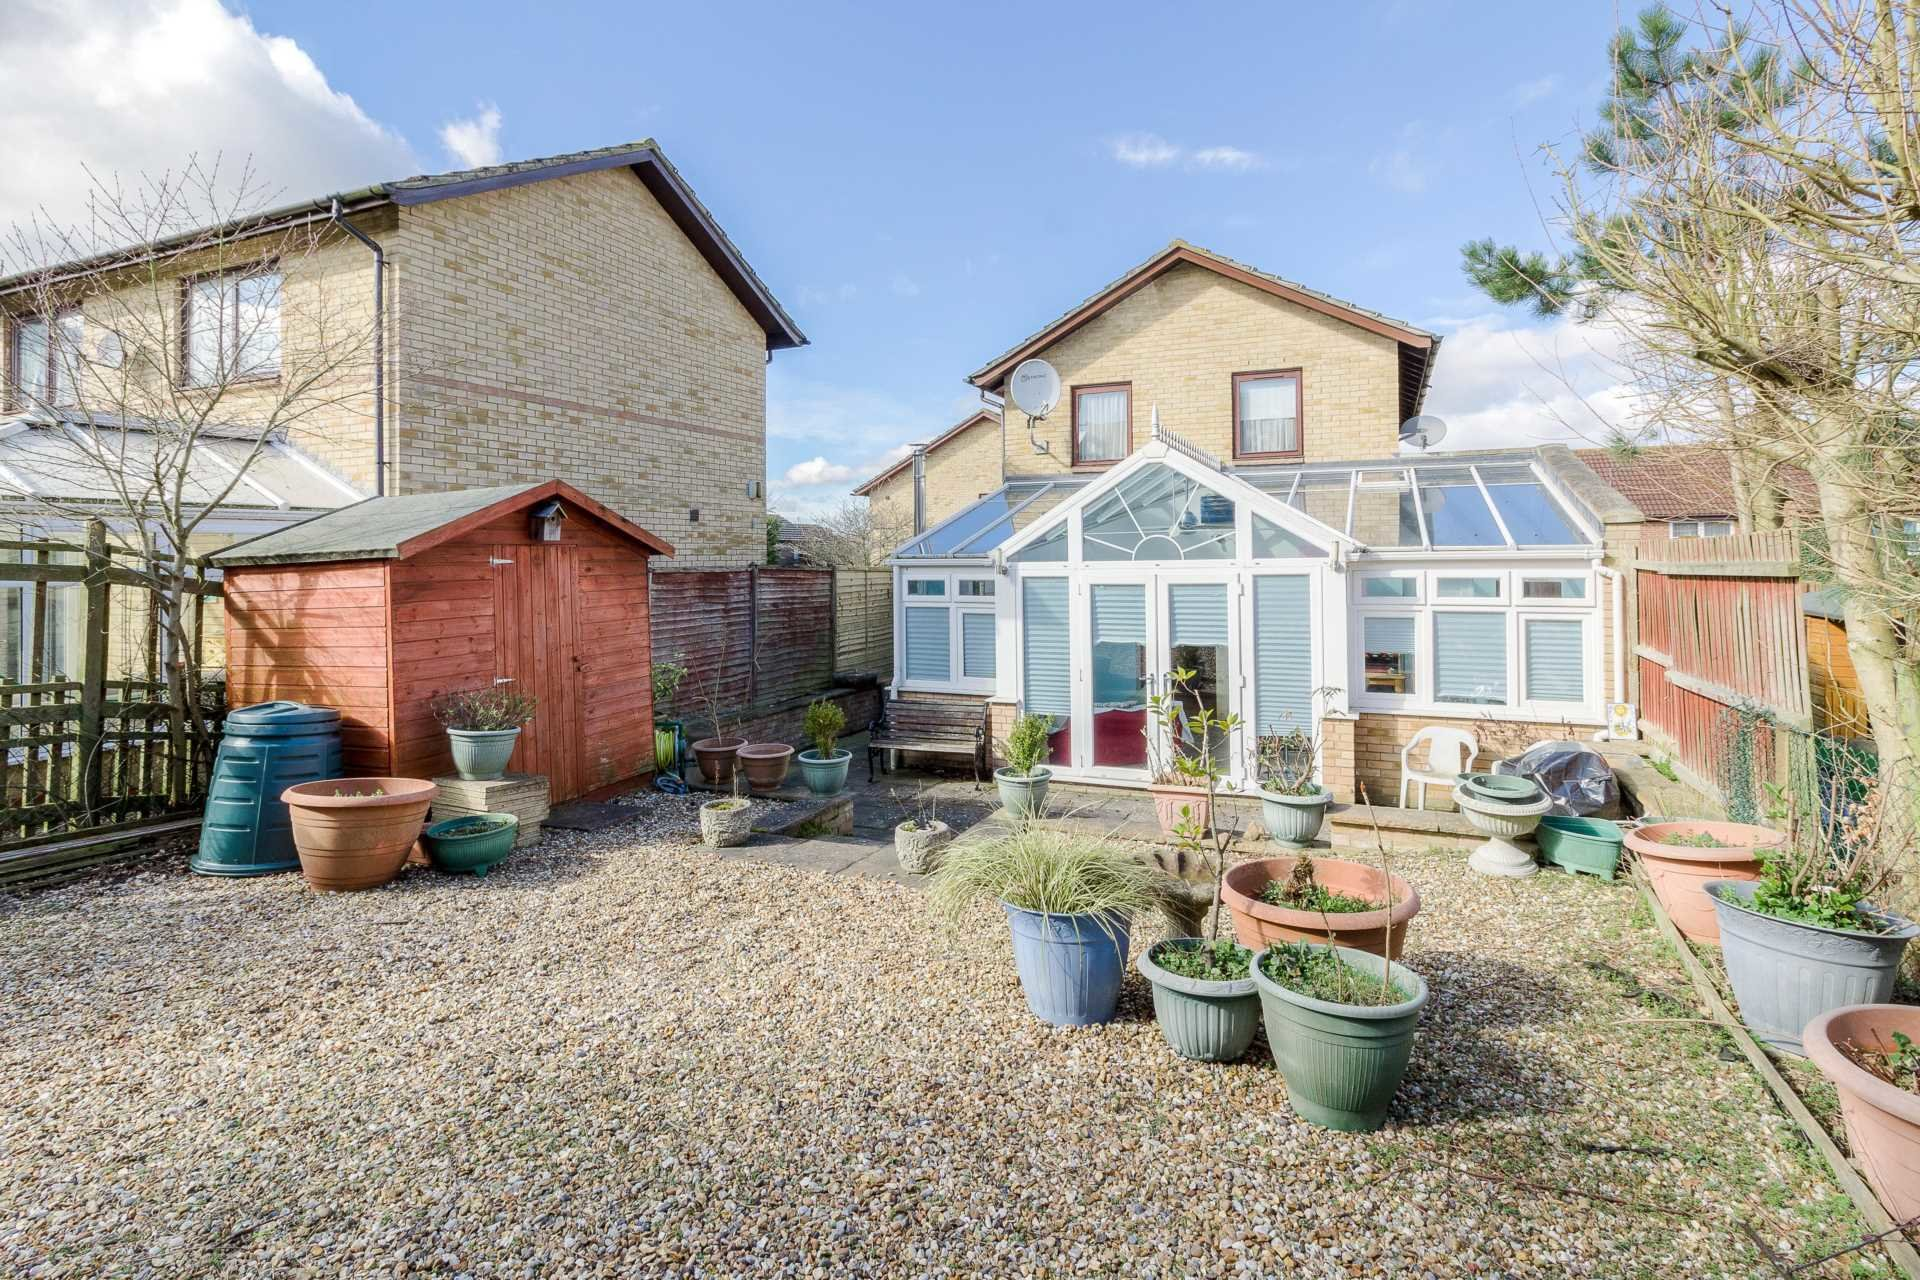 Best 3 Bedroom Detached House For Sale Hambleton Grove Milton With Pictures